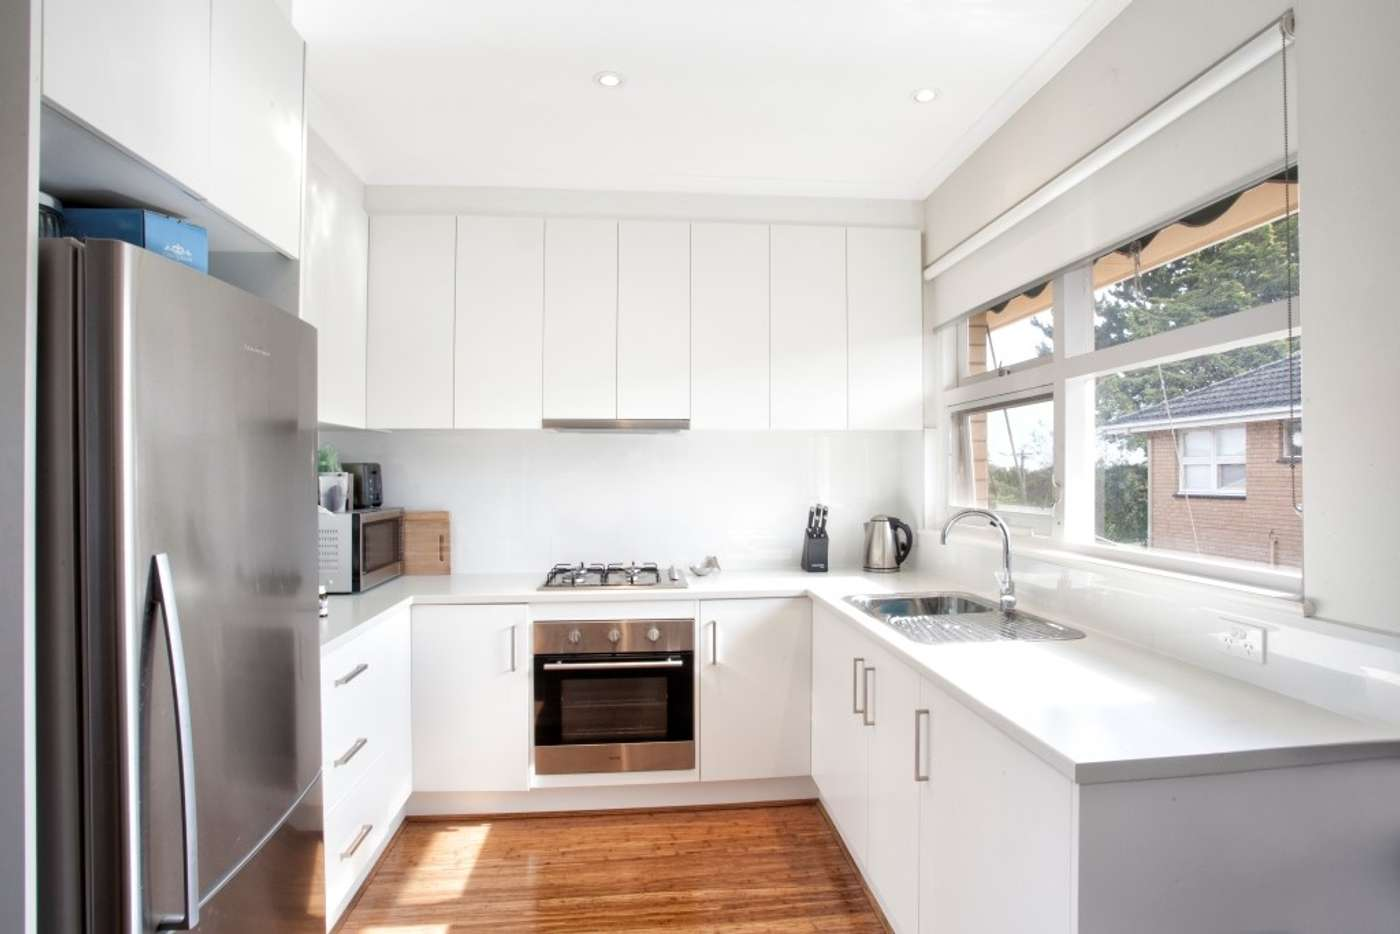 Main view of Homely apartment listing, 7/616-618 Centre Road, Bentleigh VIC 3204